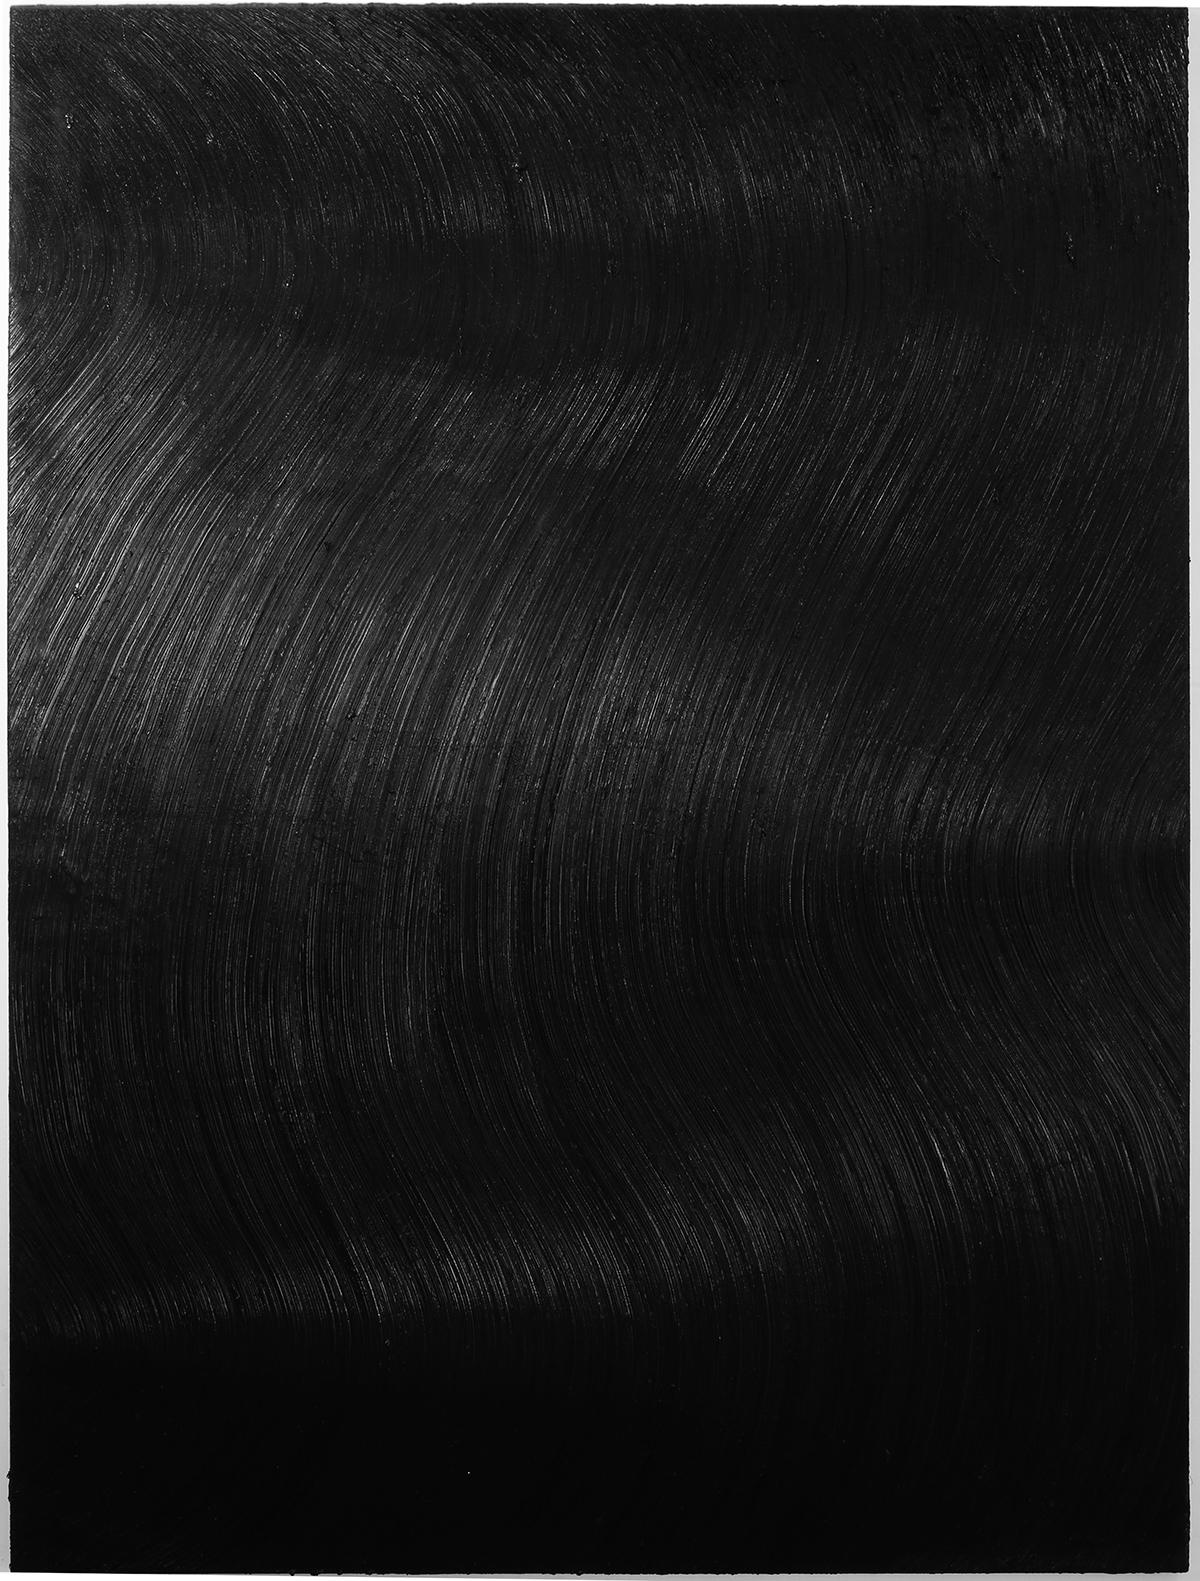 BLACK XIV - Large Format Painting, Modern Abstract Oil Painting, Minimal Art